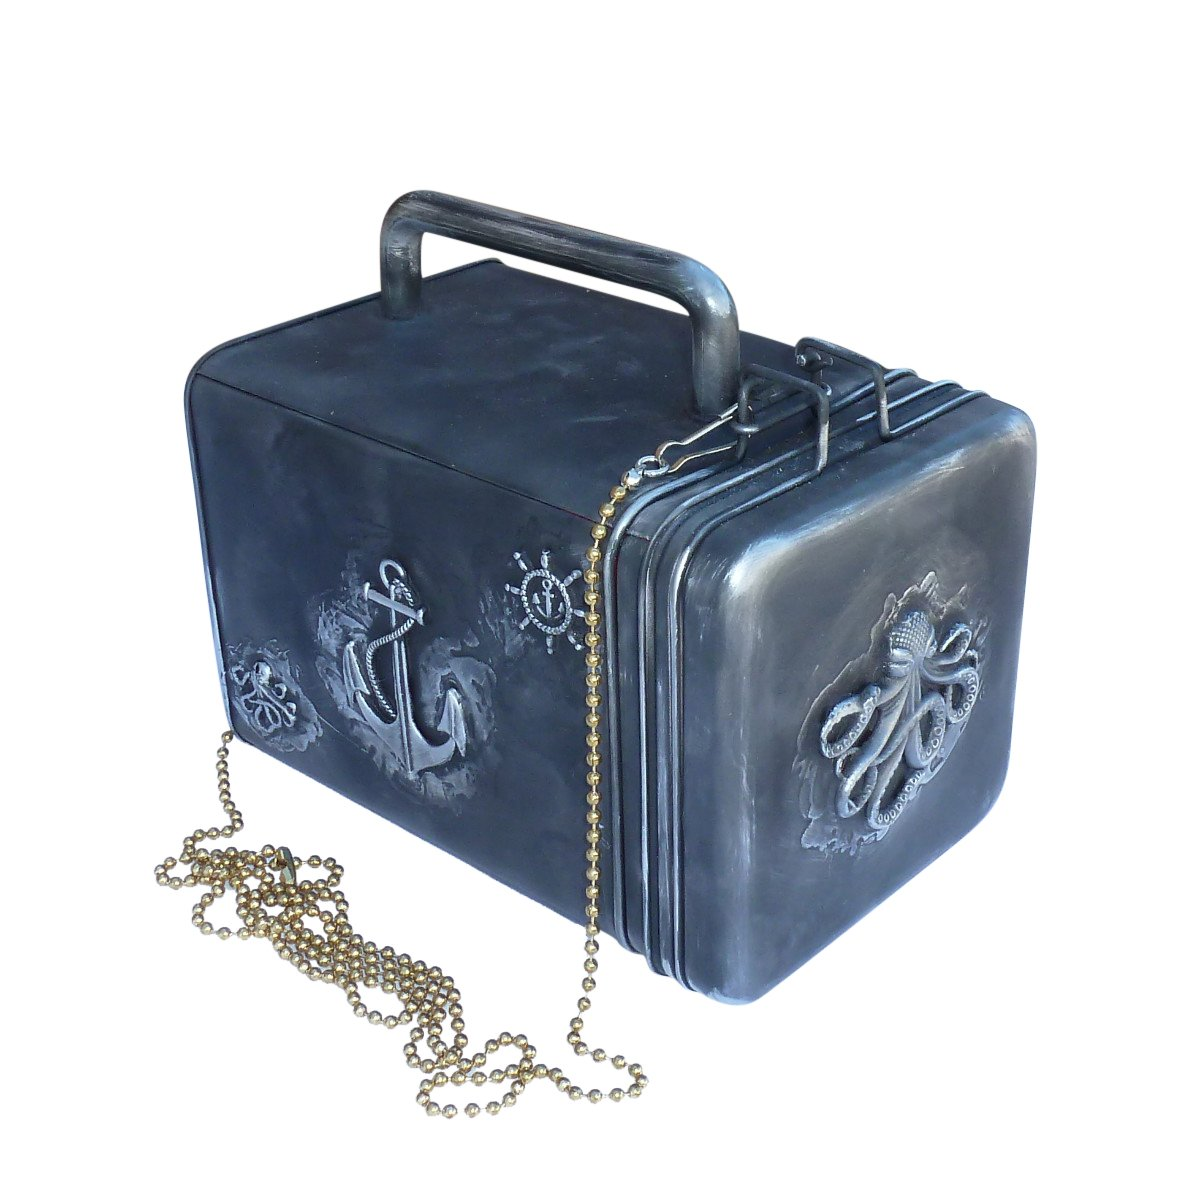 SteAMPunk travel Nautical Steampunk purse BOX handmade by OldJunkyardBoutique (Image #1)